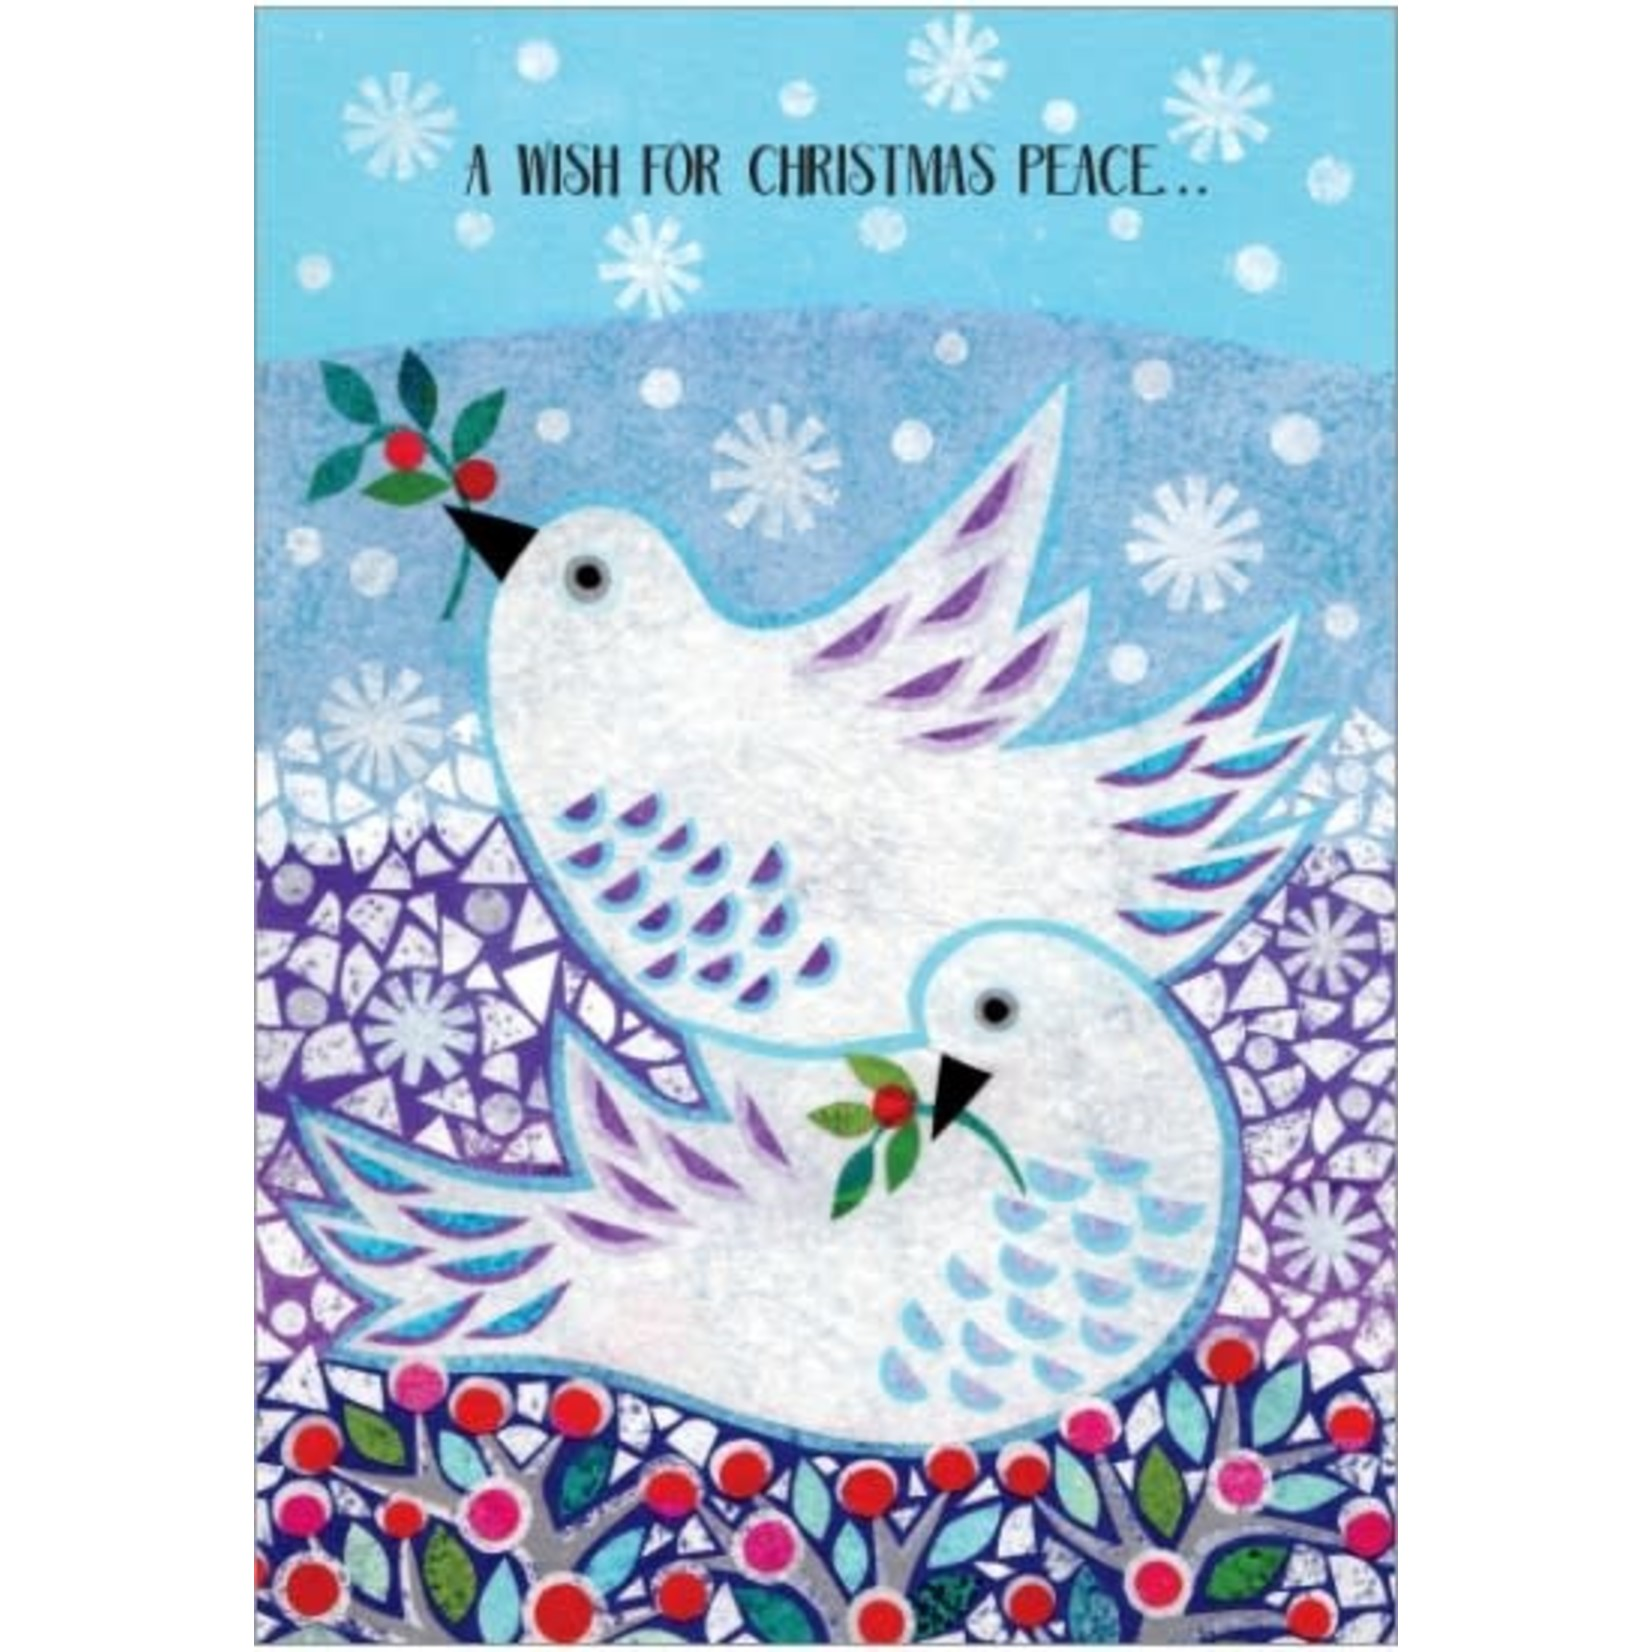 A WISH FOR PEACE CARD